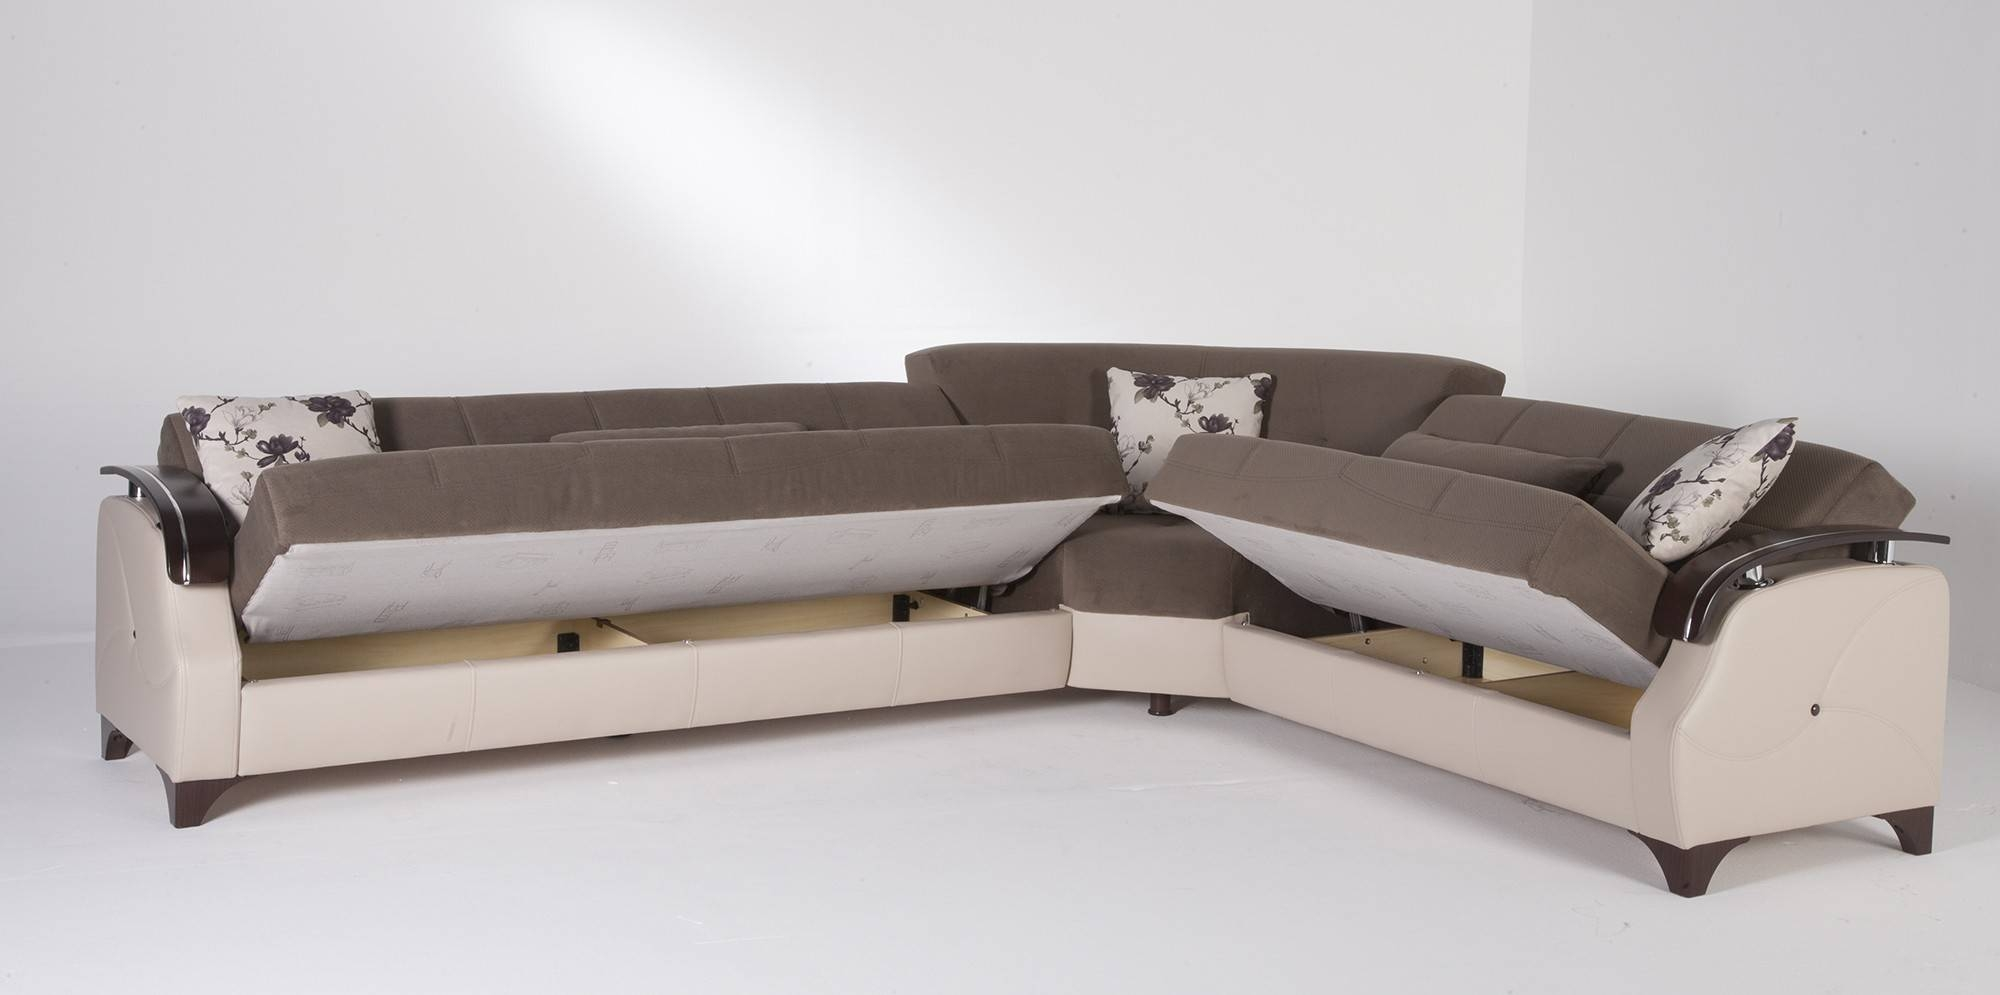 Popular Contemporary Sleeper Sofas With Modern Red Sectional pertaining to Red Sectional Sleeper Sofas (Image 14 of 30)